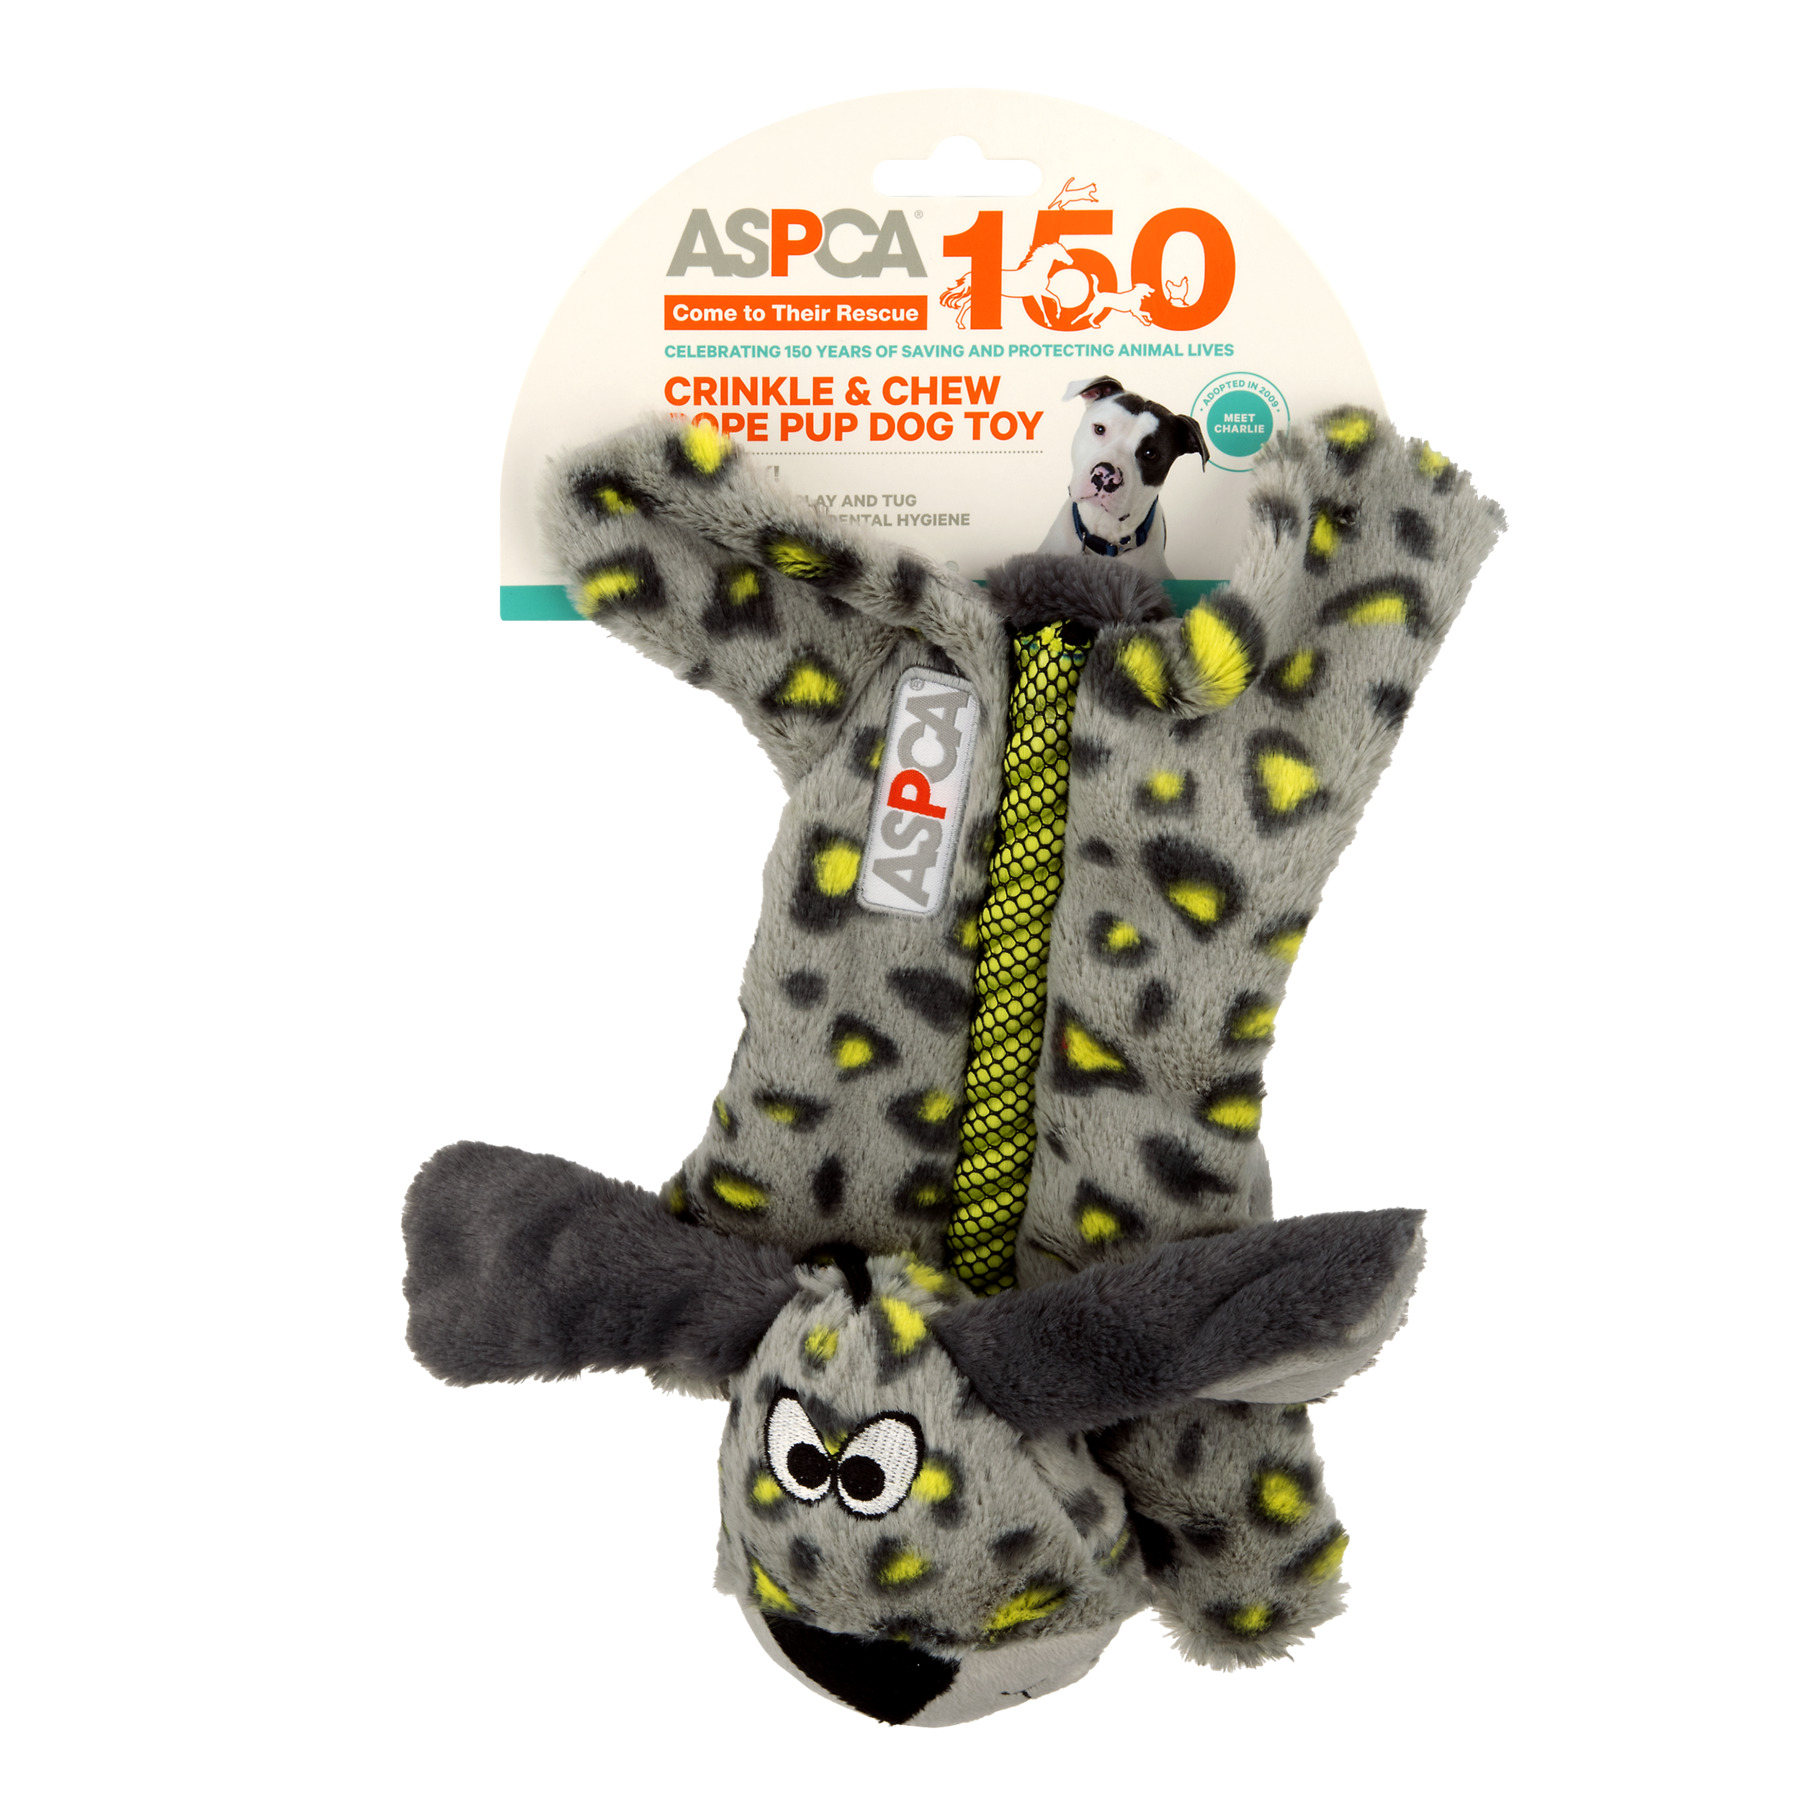 ASPCA Blue Crinkle & Chew Rope Pup Dog Toy